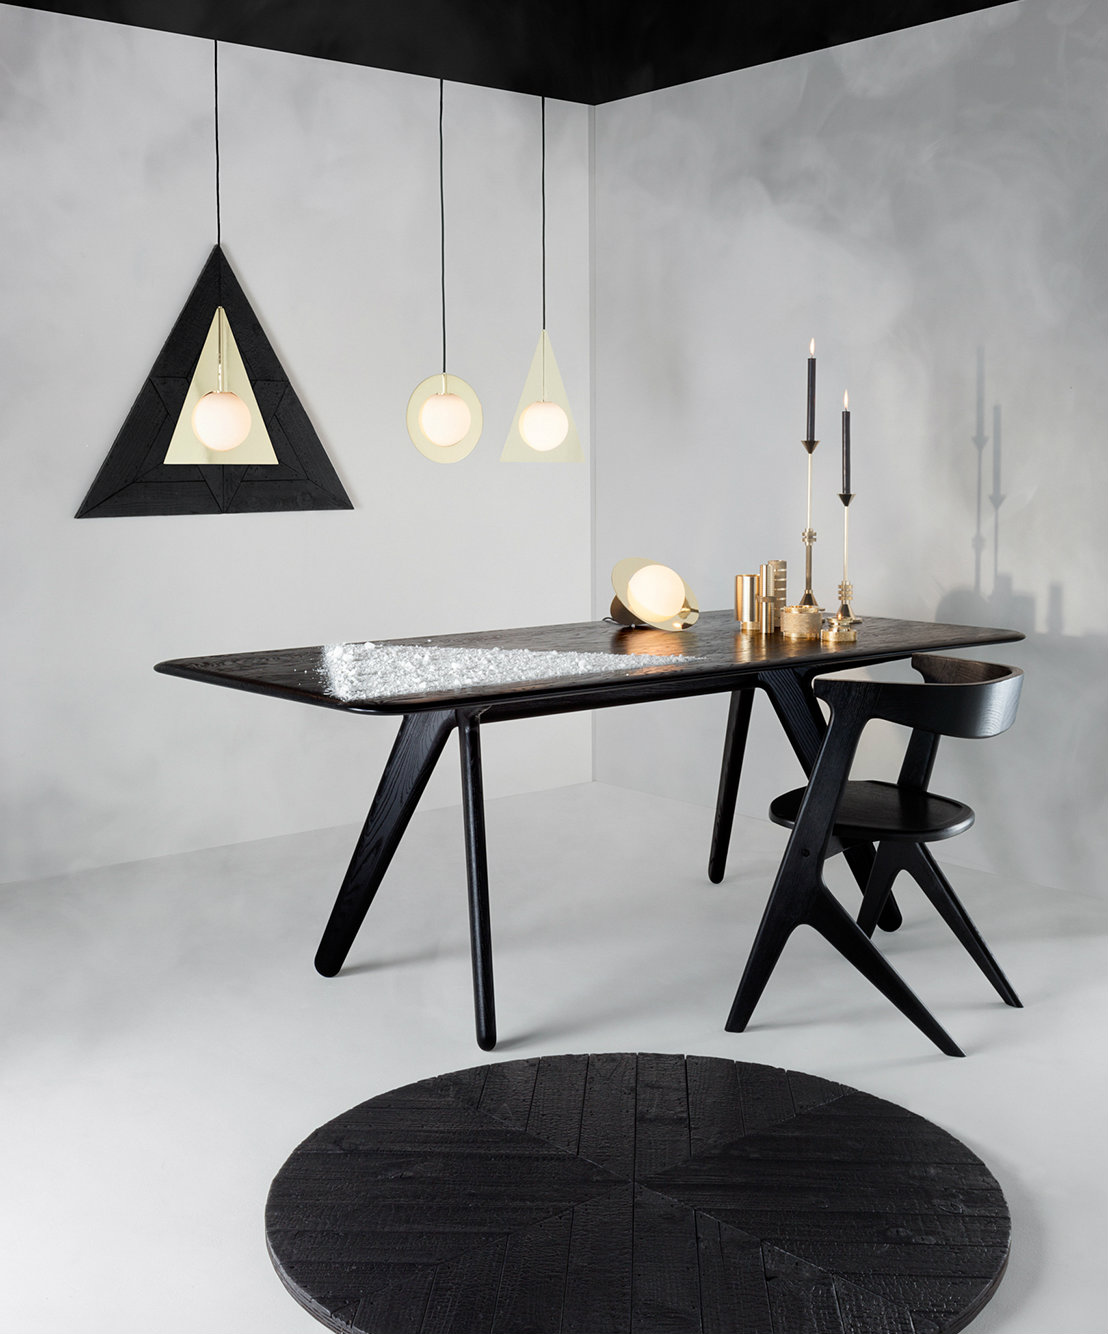 Tom Dixon despacho